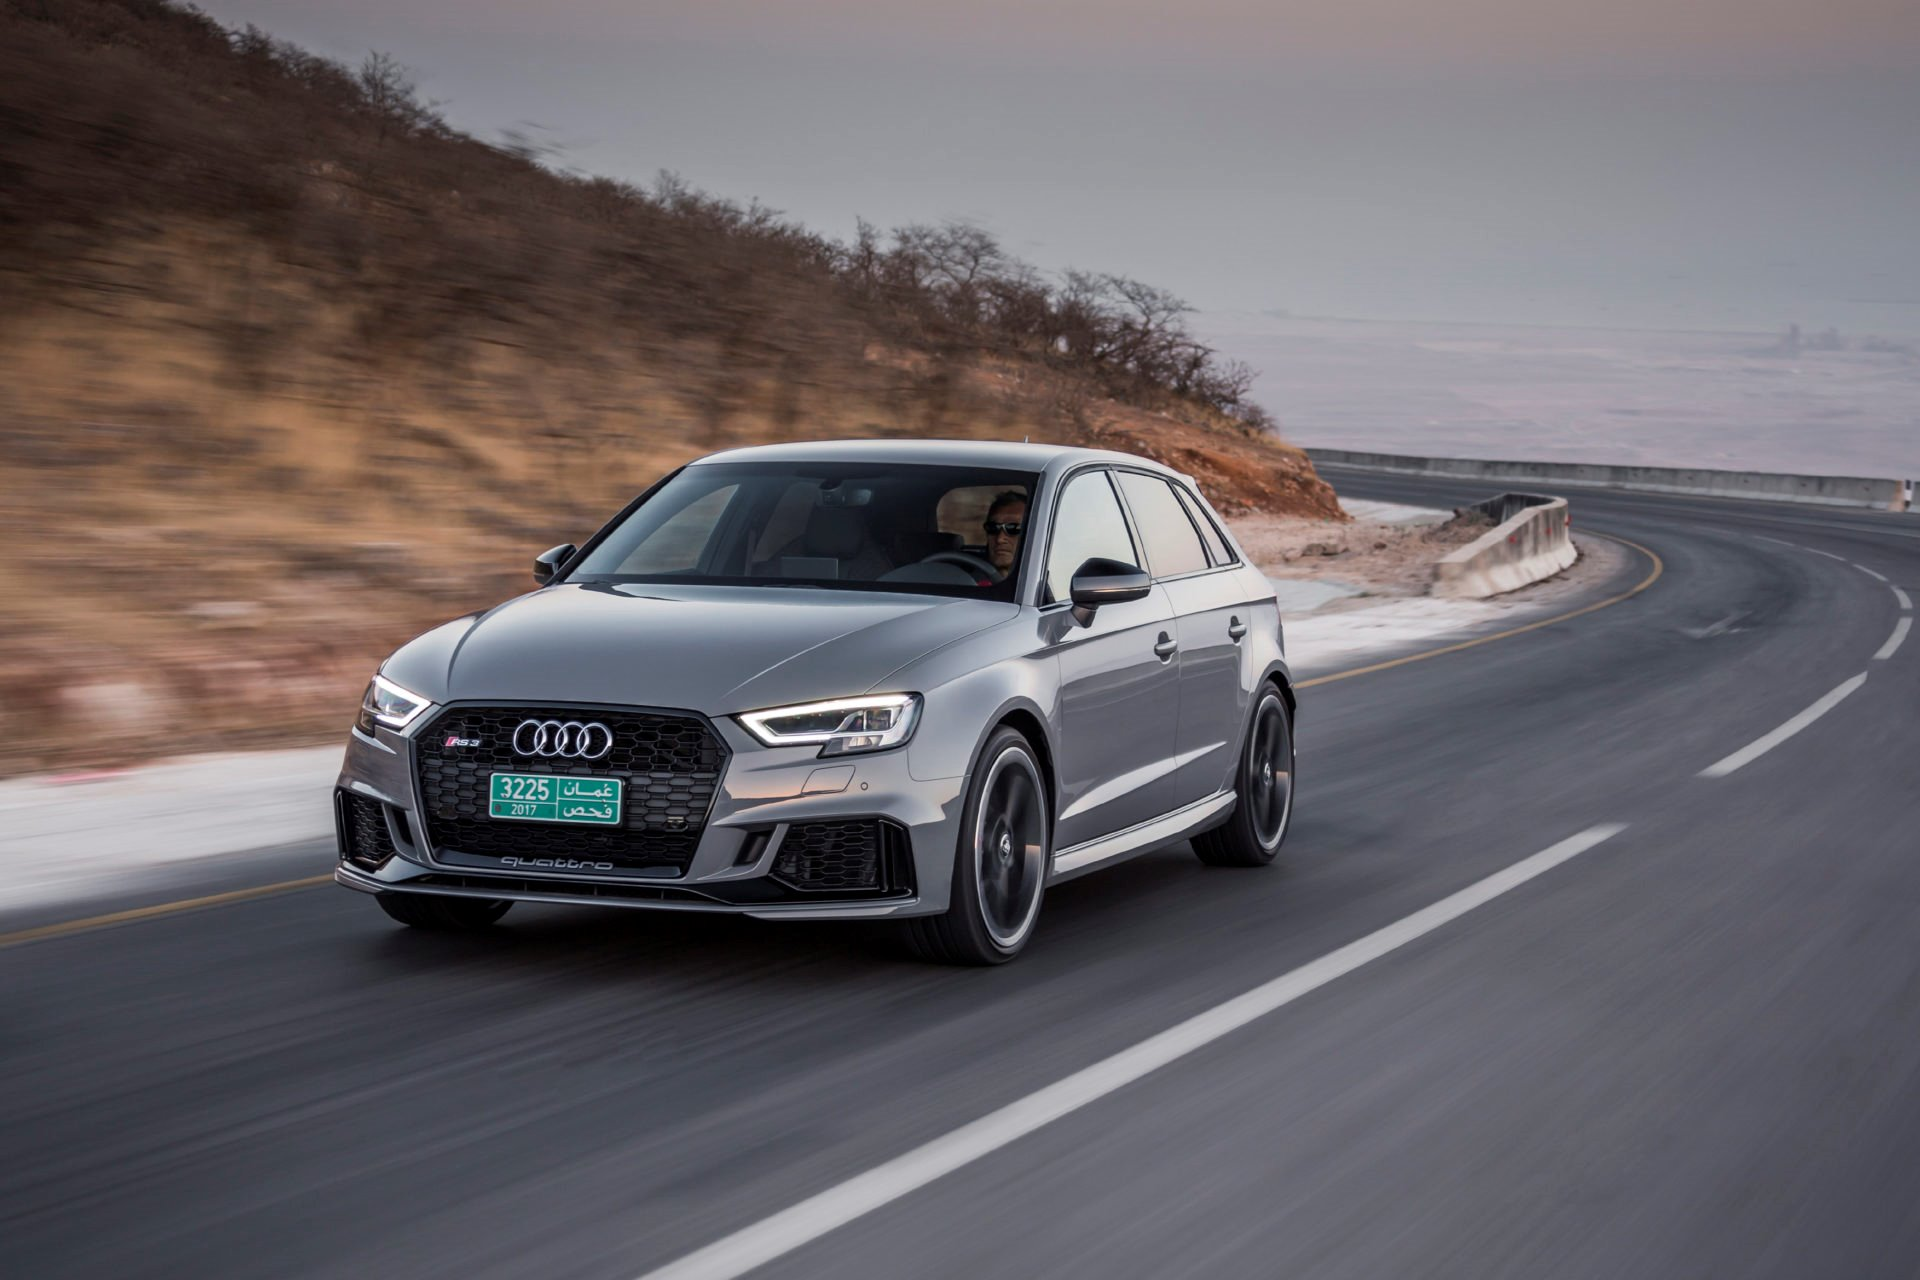 New 2019 Audi RS 3 2.5T quattro 2.5T quattro for sale $56,200 at M and V Leasing in Brooklyn NY 11223 1